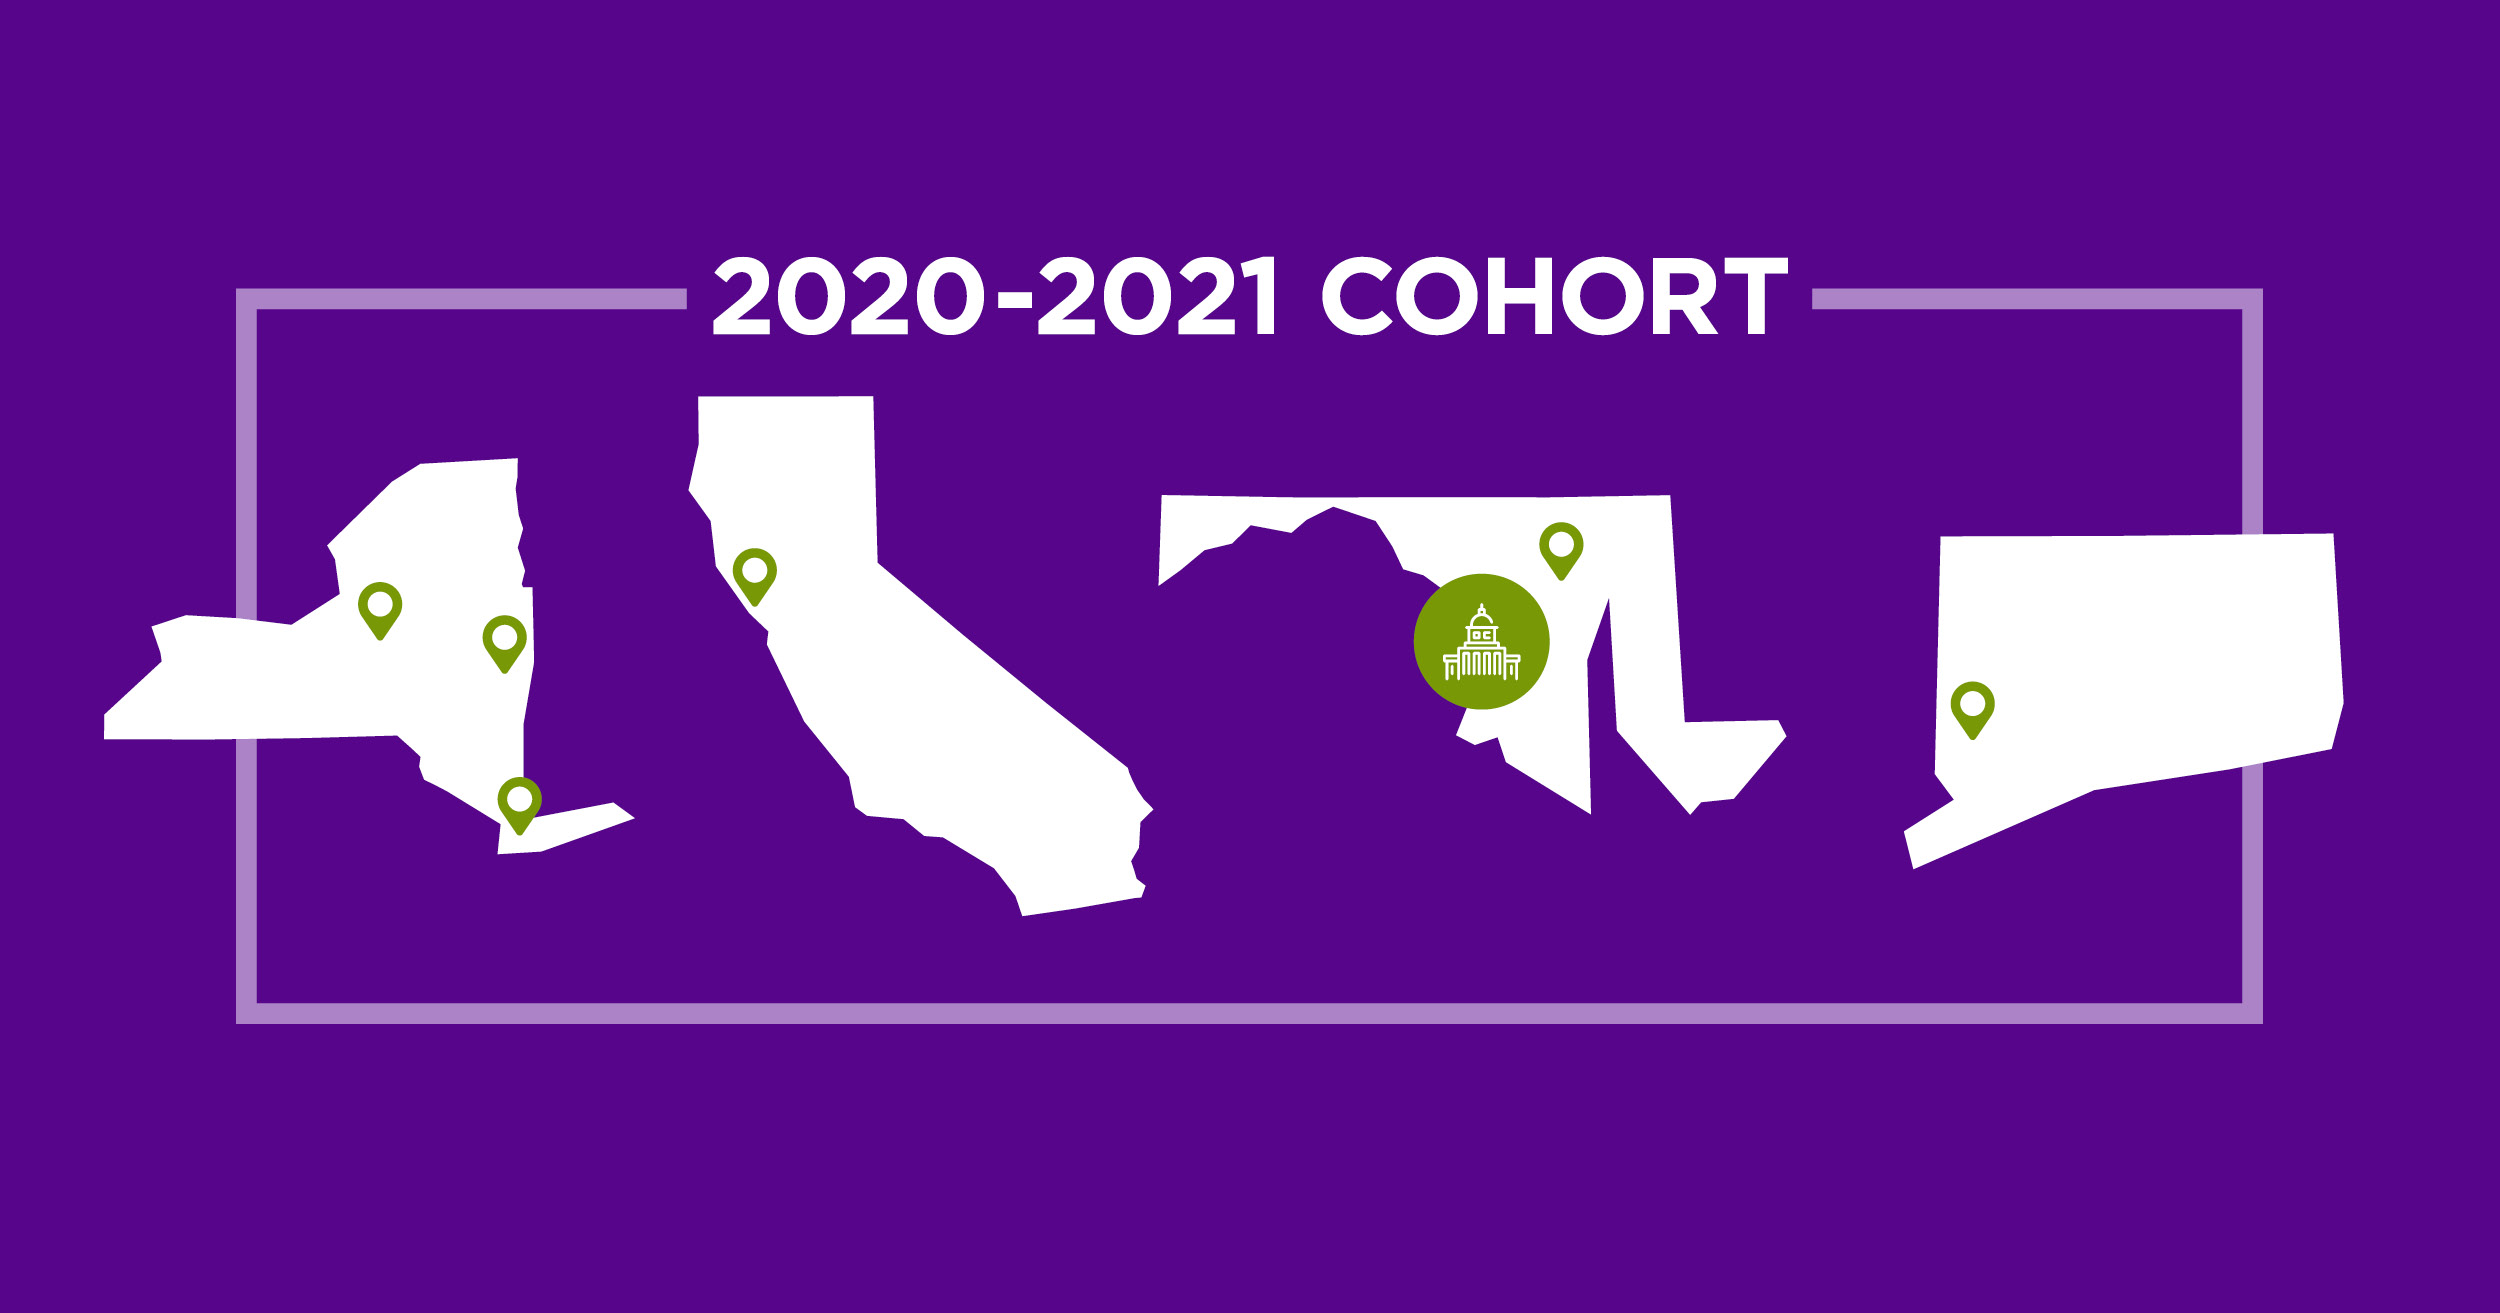 2020-2021 NYU Teacher Residency cohort and states